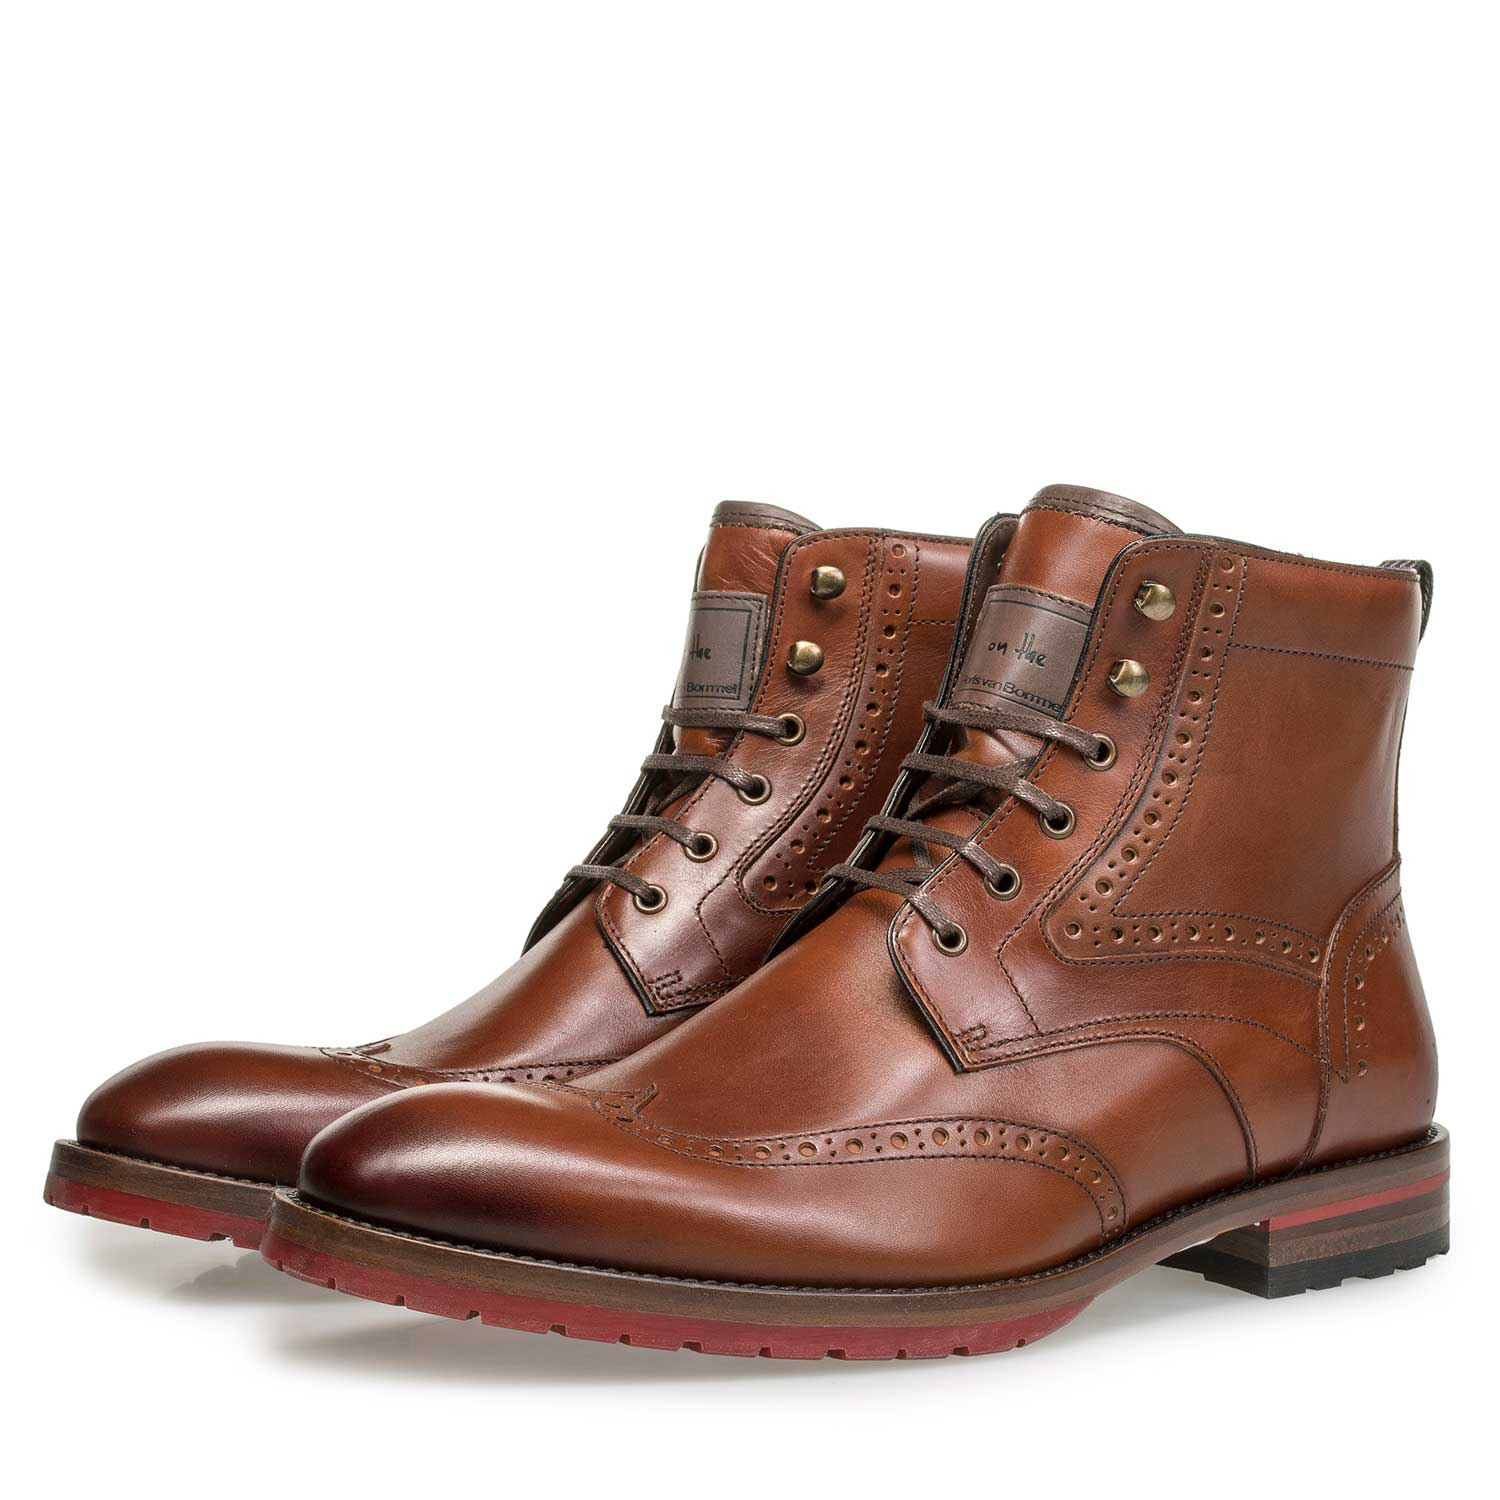 10295/03 - Cognac leren brogue veterboot